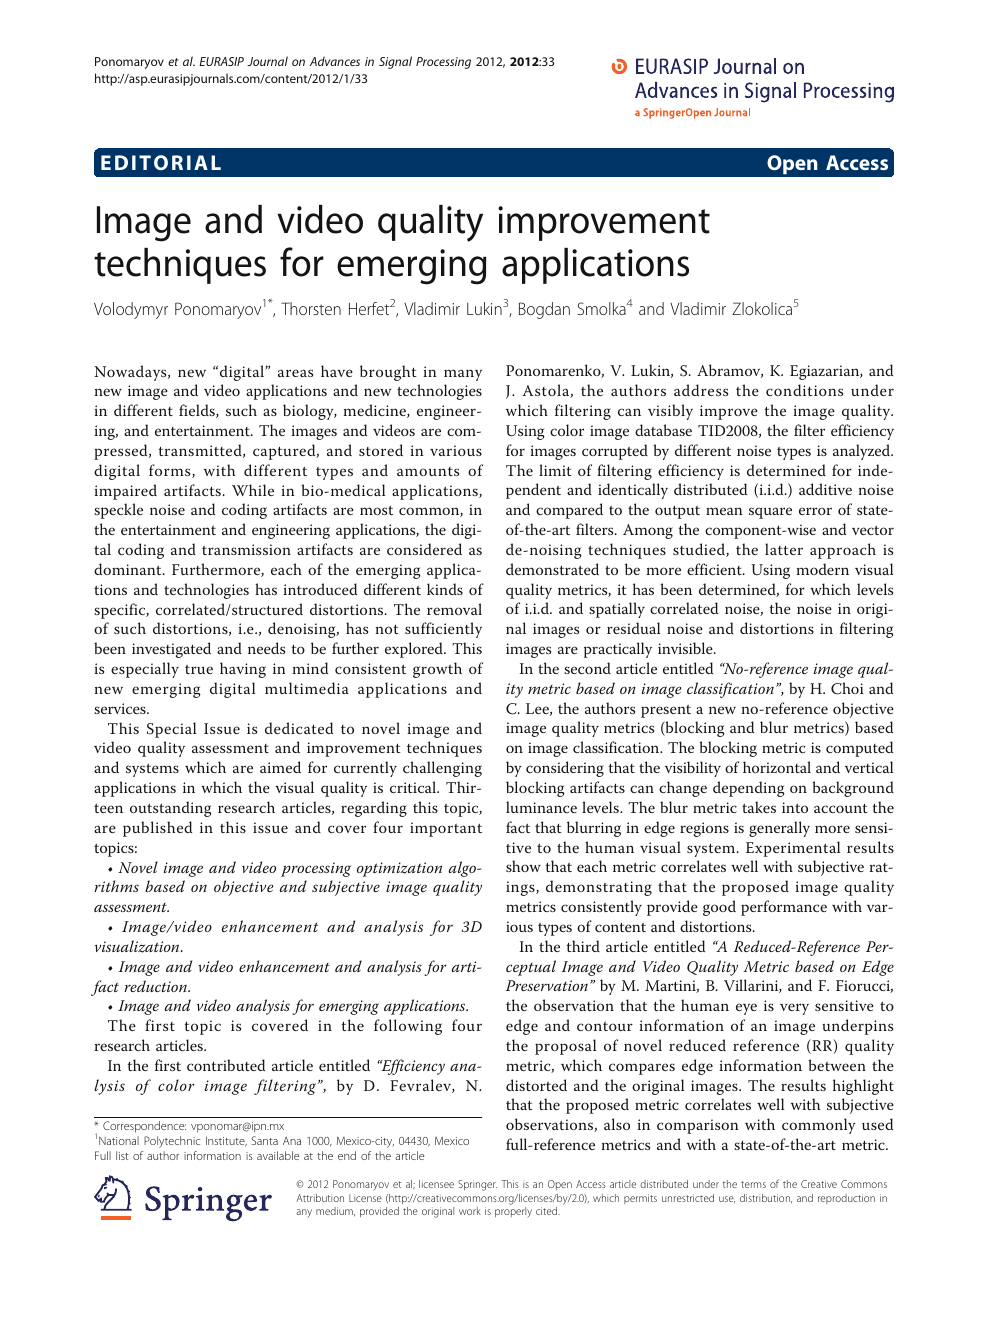 Image and video quality improvement techniques for emerging